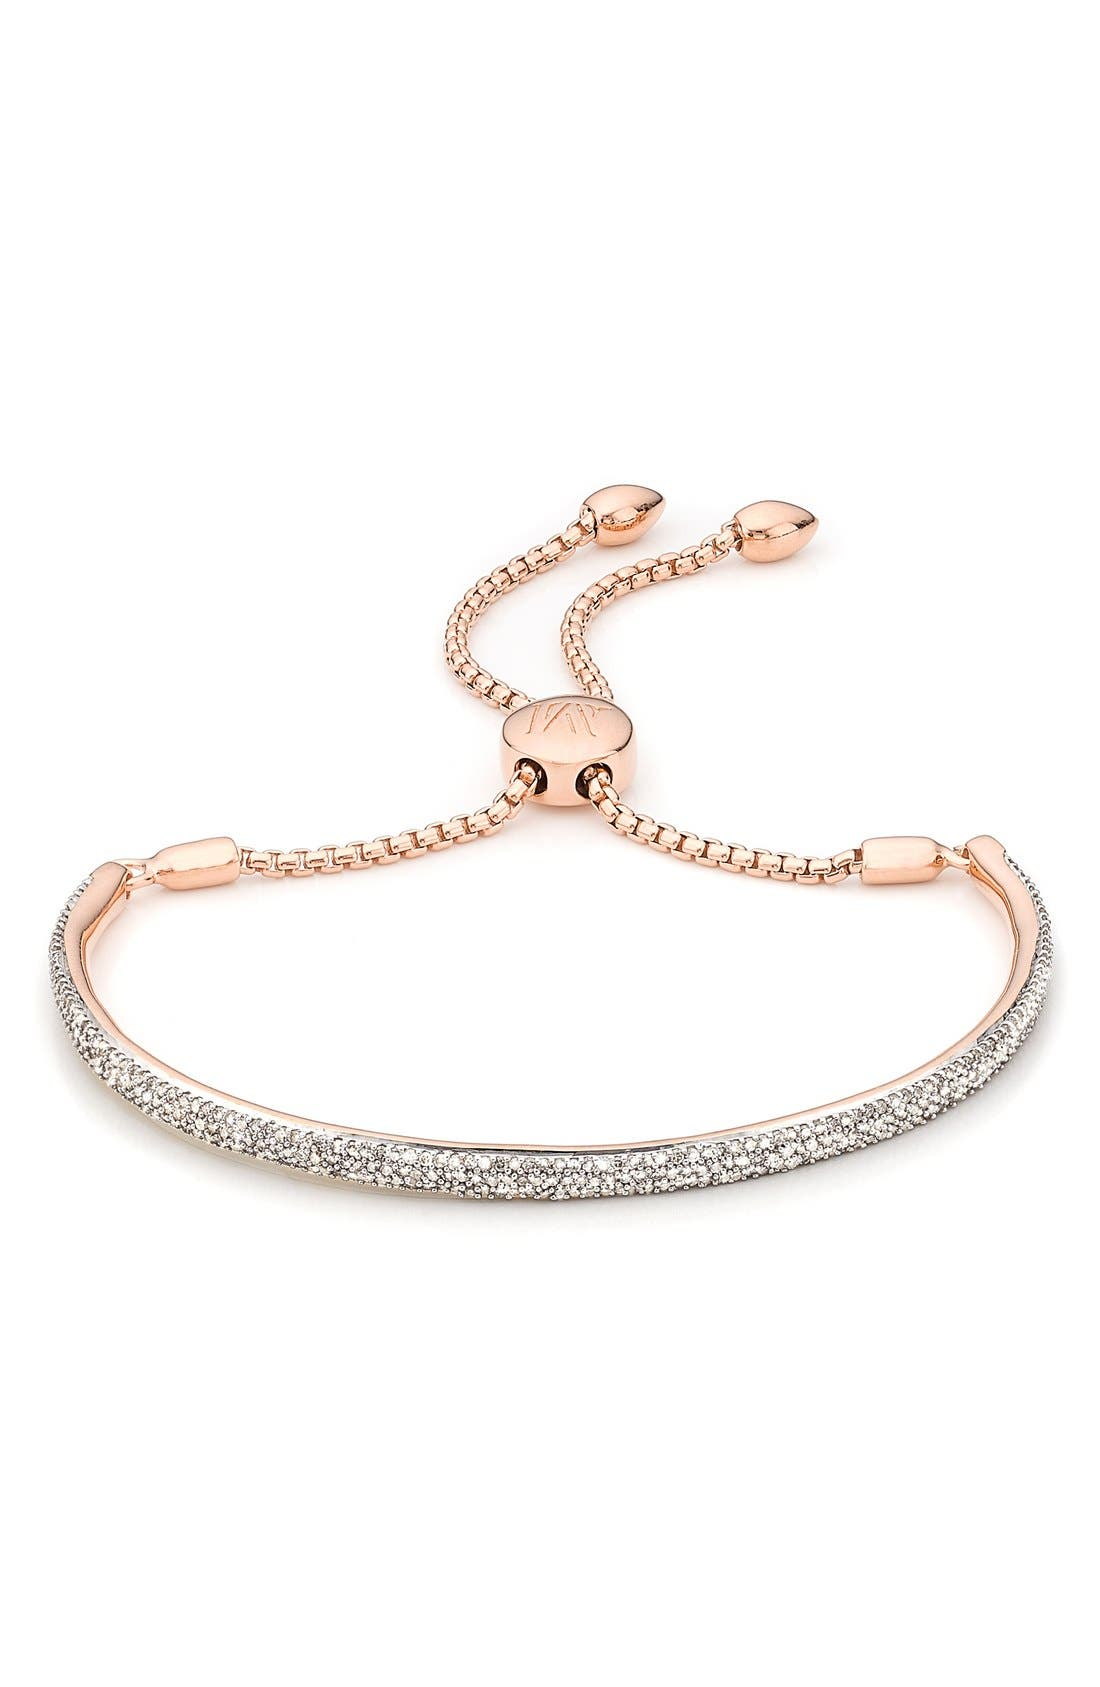 Fiji Diamond Bar Bracelet,                             Main thumbnail 1, color,                             ROSE GOLD